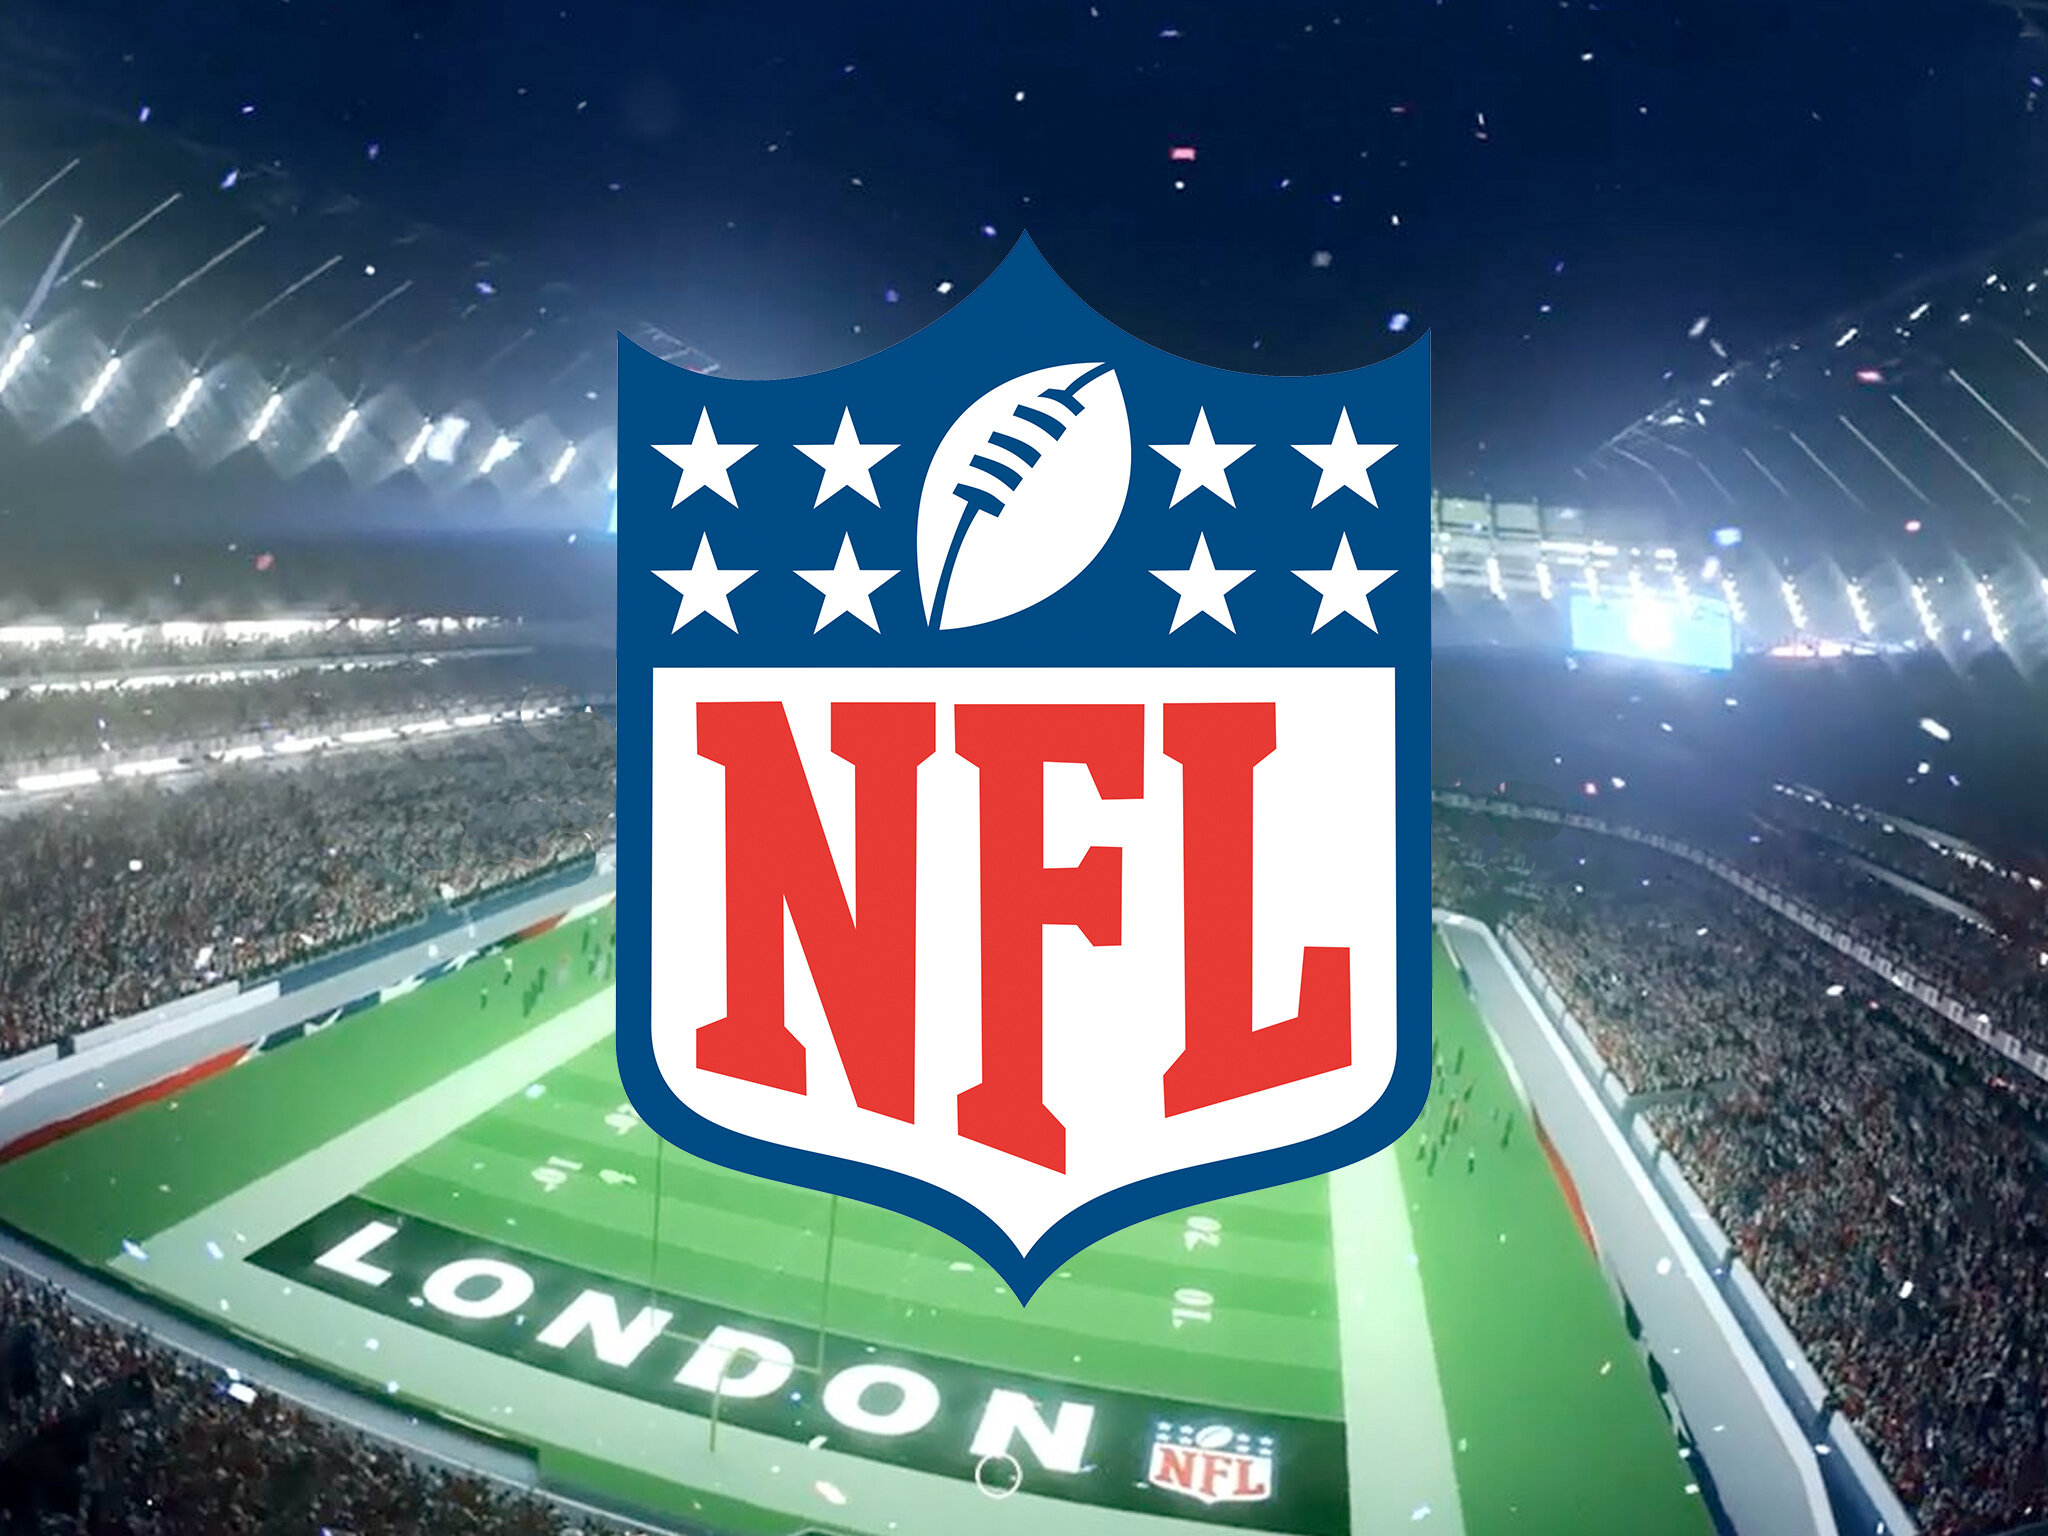 NFL: International Series Manager - Each year, London is the host of regular season NFL games. The International Series Manager helps the NFL and the competing teams to plan their London trips before they visit and manage their itinerary while in London.